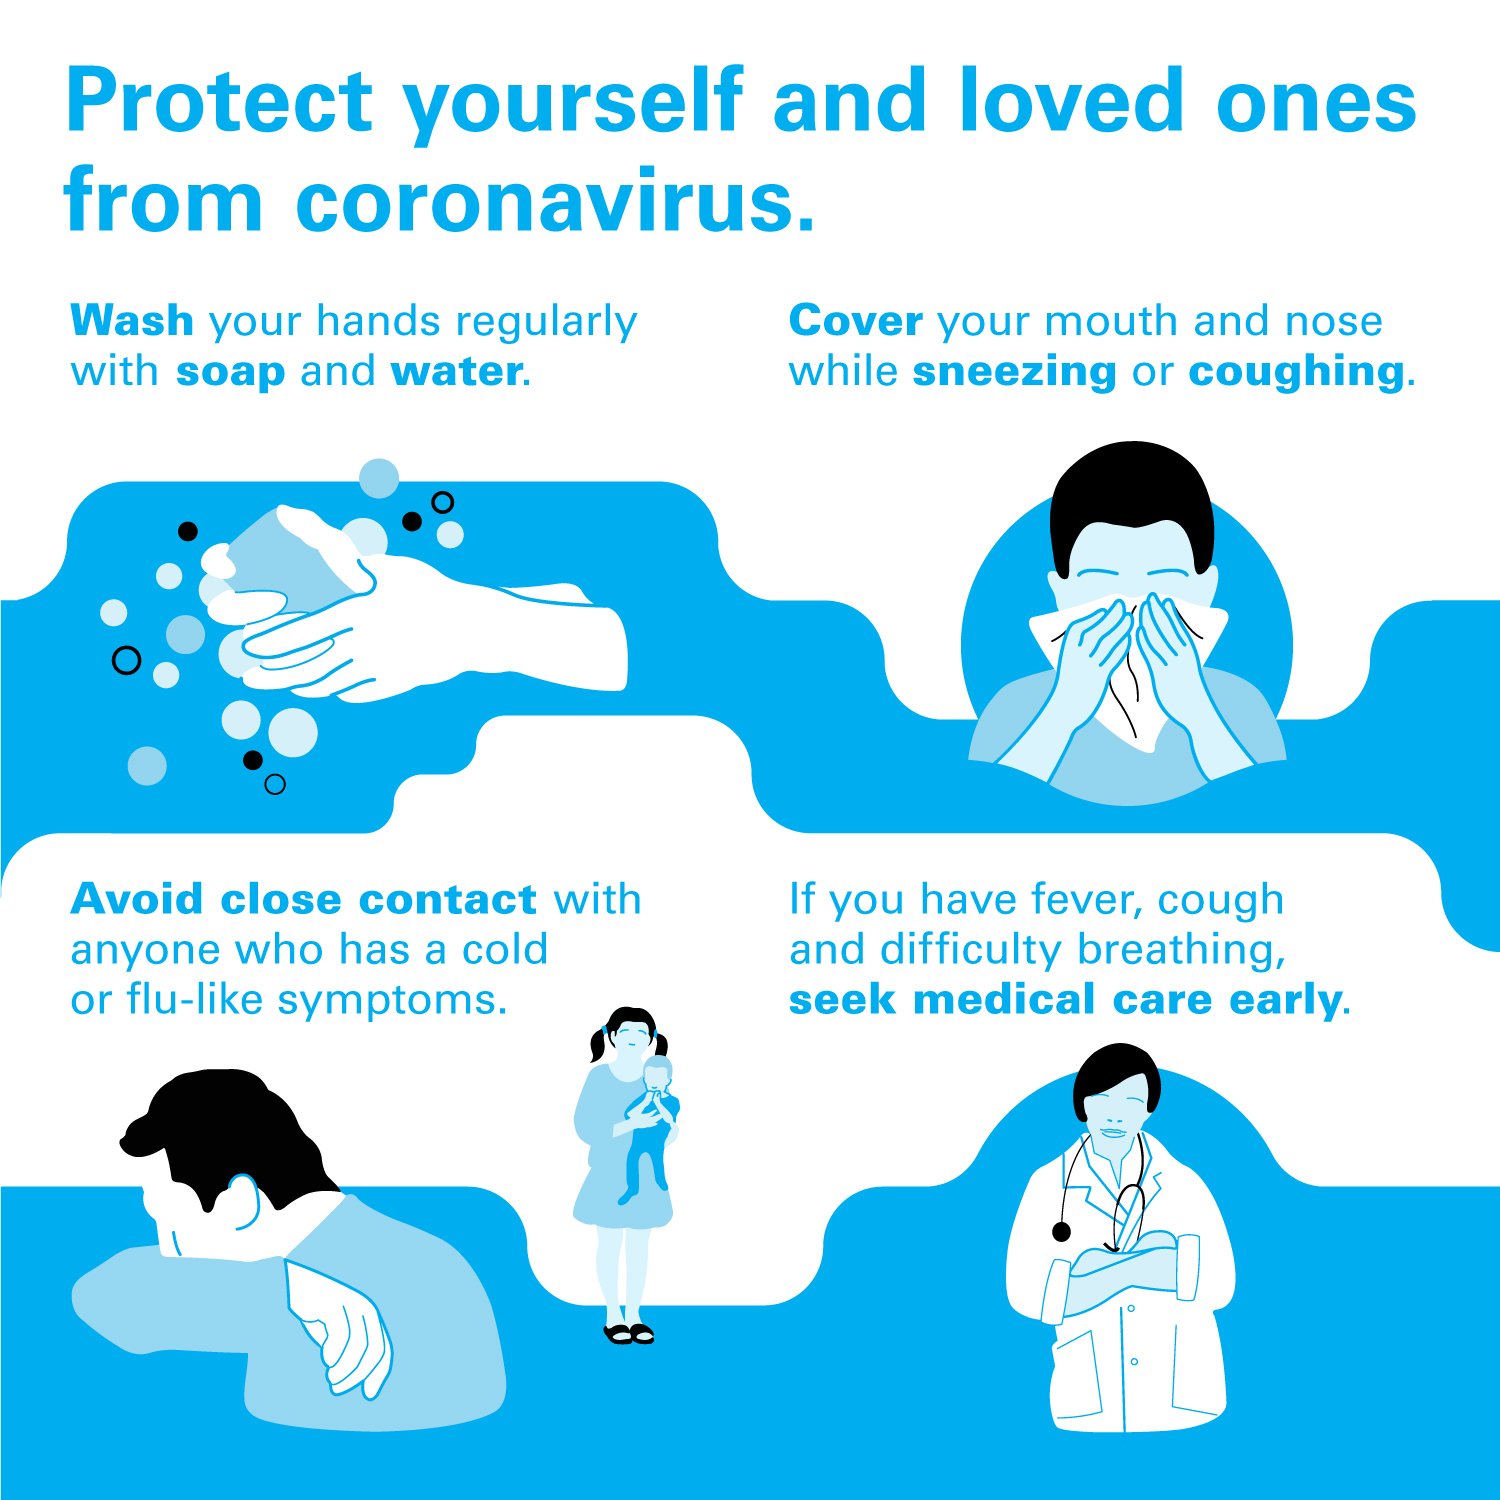 Protect yourself and loved ones from coronavirus